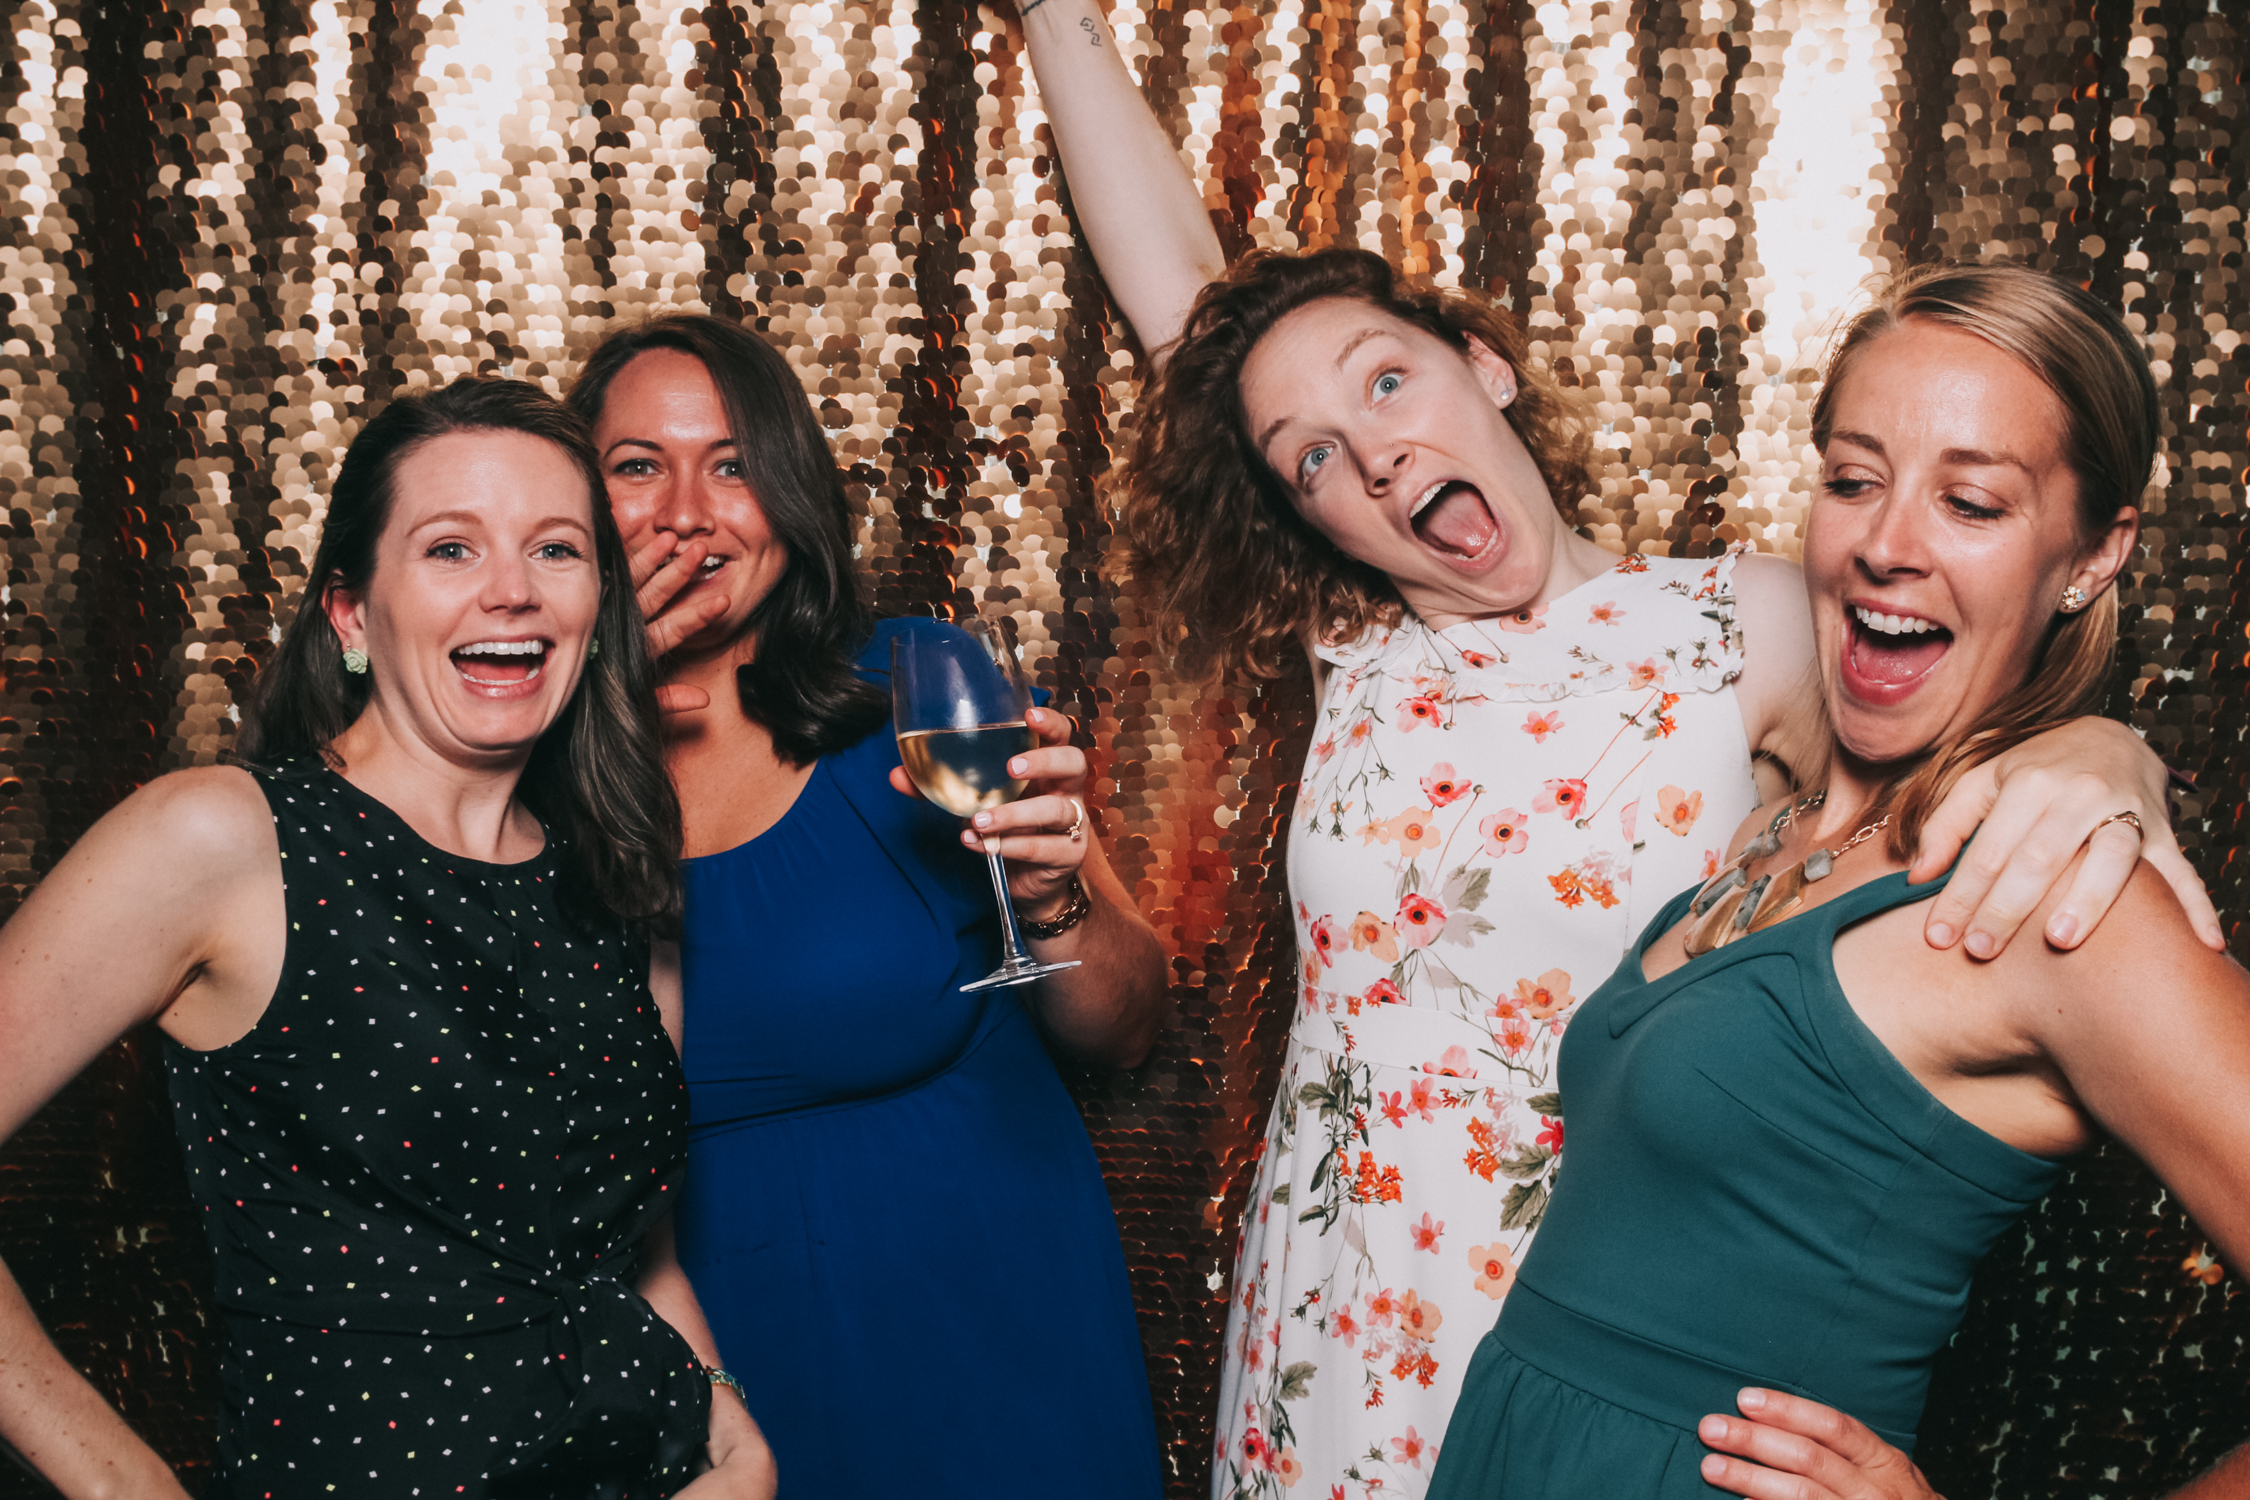 Getting Crazy in open air Baltimore wedding photo booth